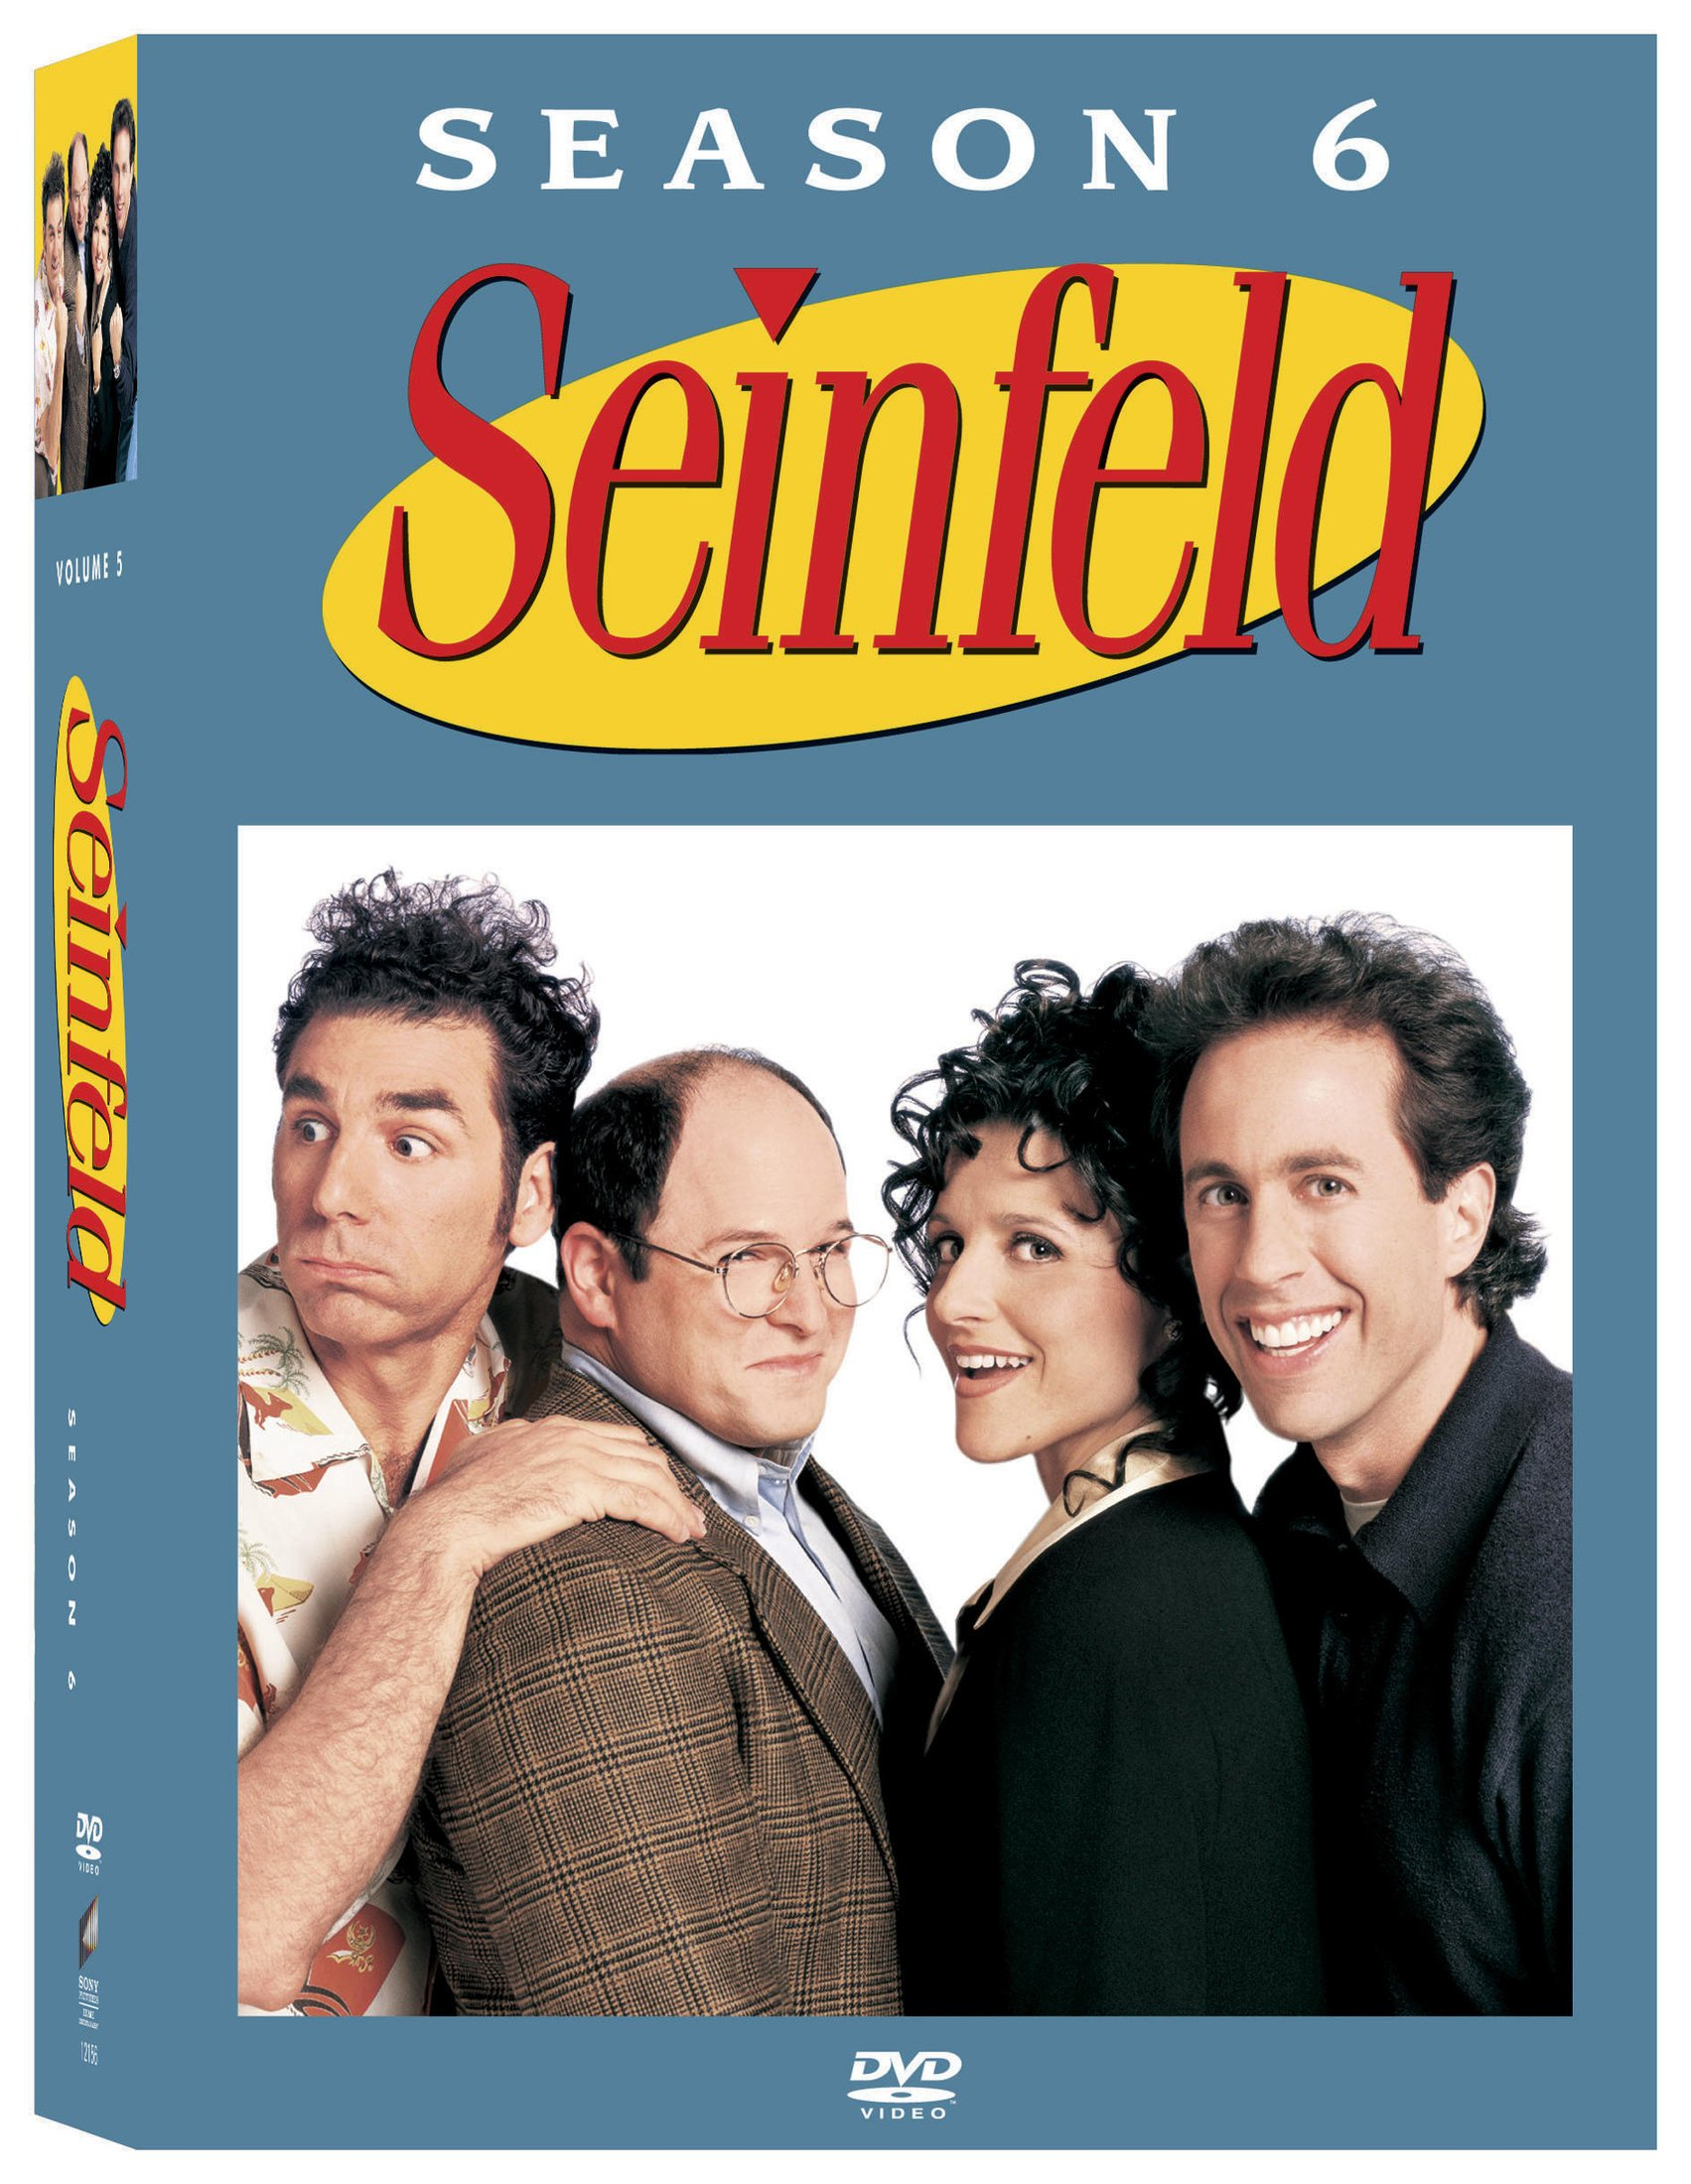 DVD : Seinfeld: The Complete Sixth Season (Boxed Set, Full Frame, , 4 Disc)